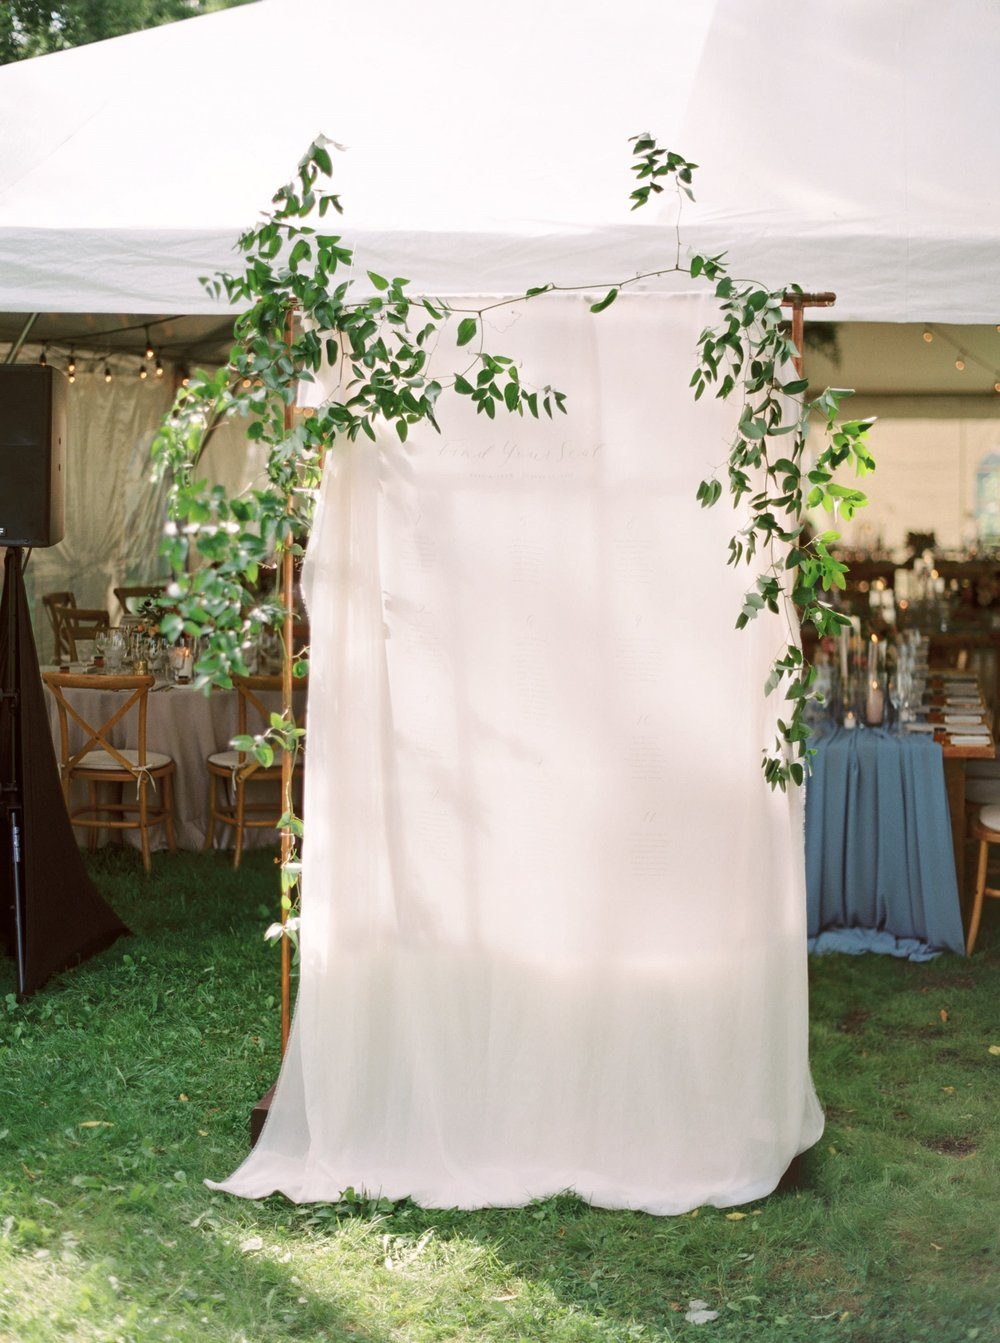 niagara_wedding_planner_439.jpg